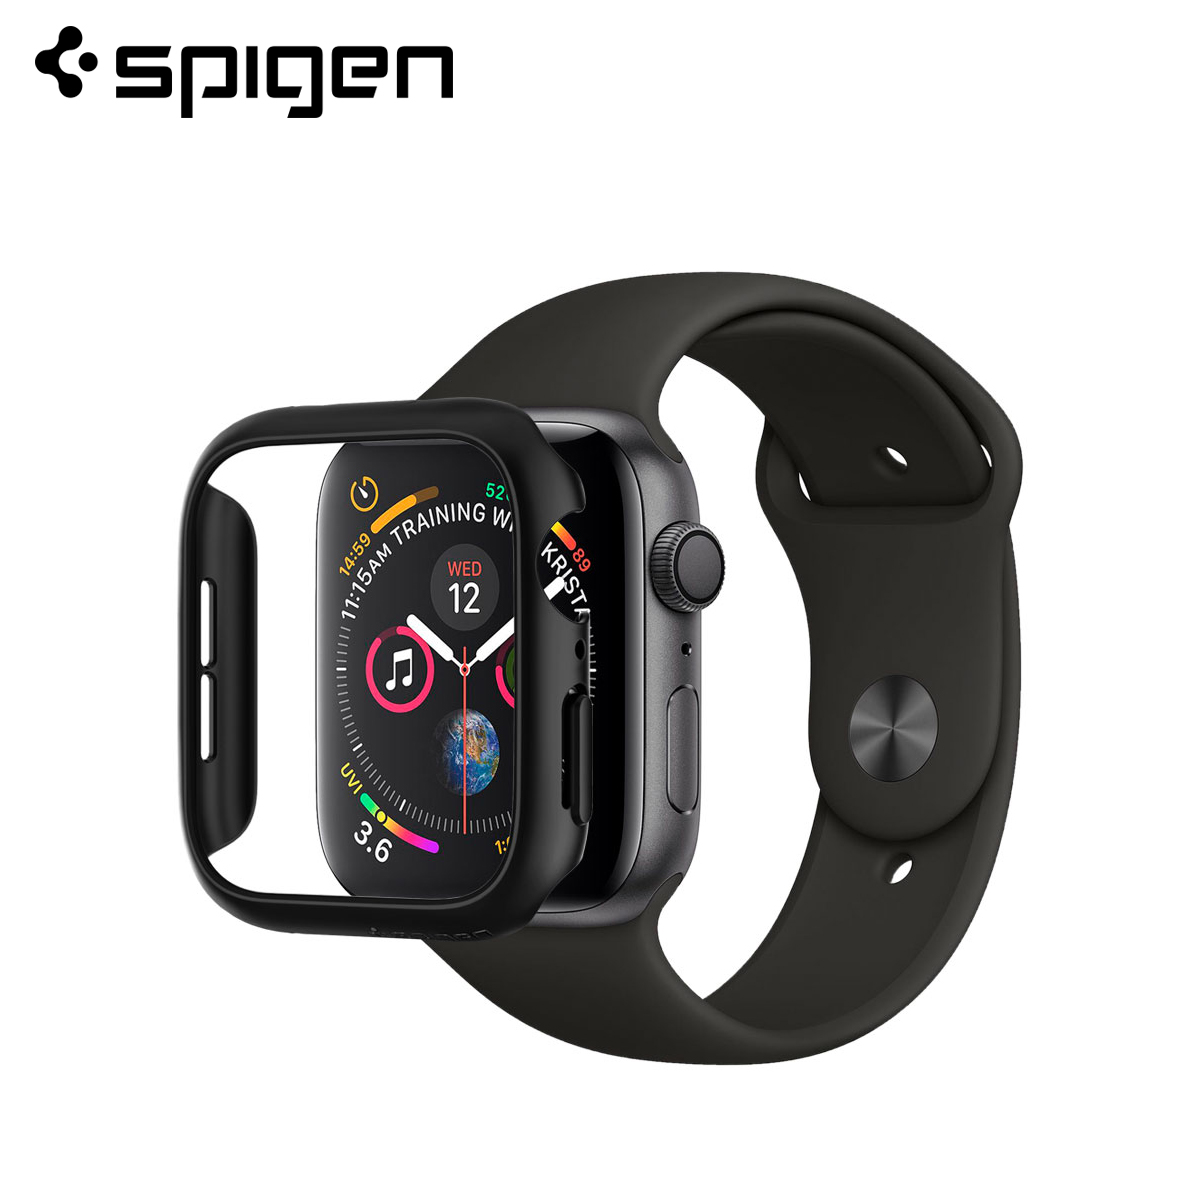 Spigen Thin Fit For Apple Watch 5 / 4 (44mm/40mm) Cases Form-fitted Design Hard Polycarbonate Material Smooth Finish Thin Cover